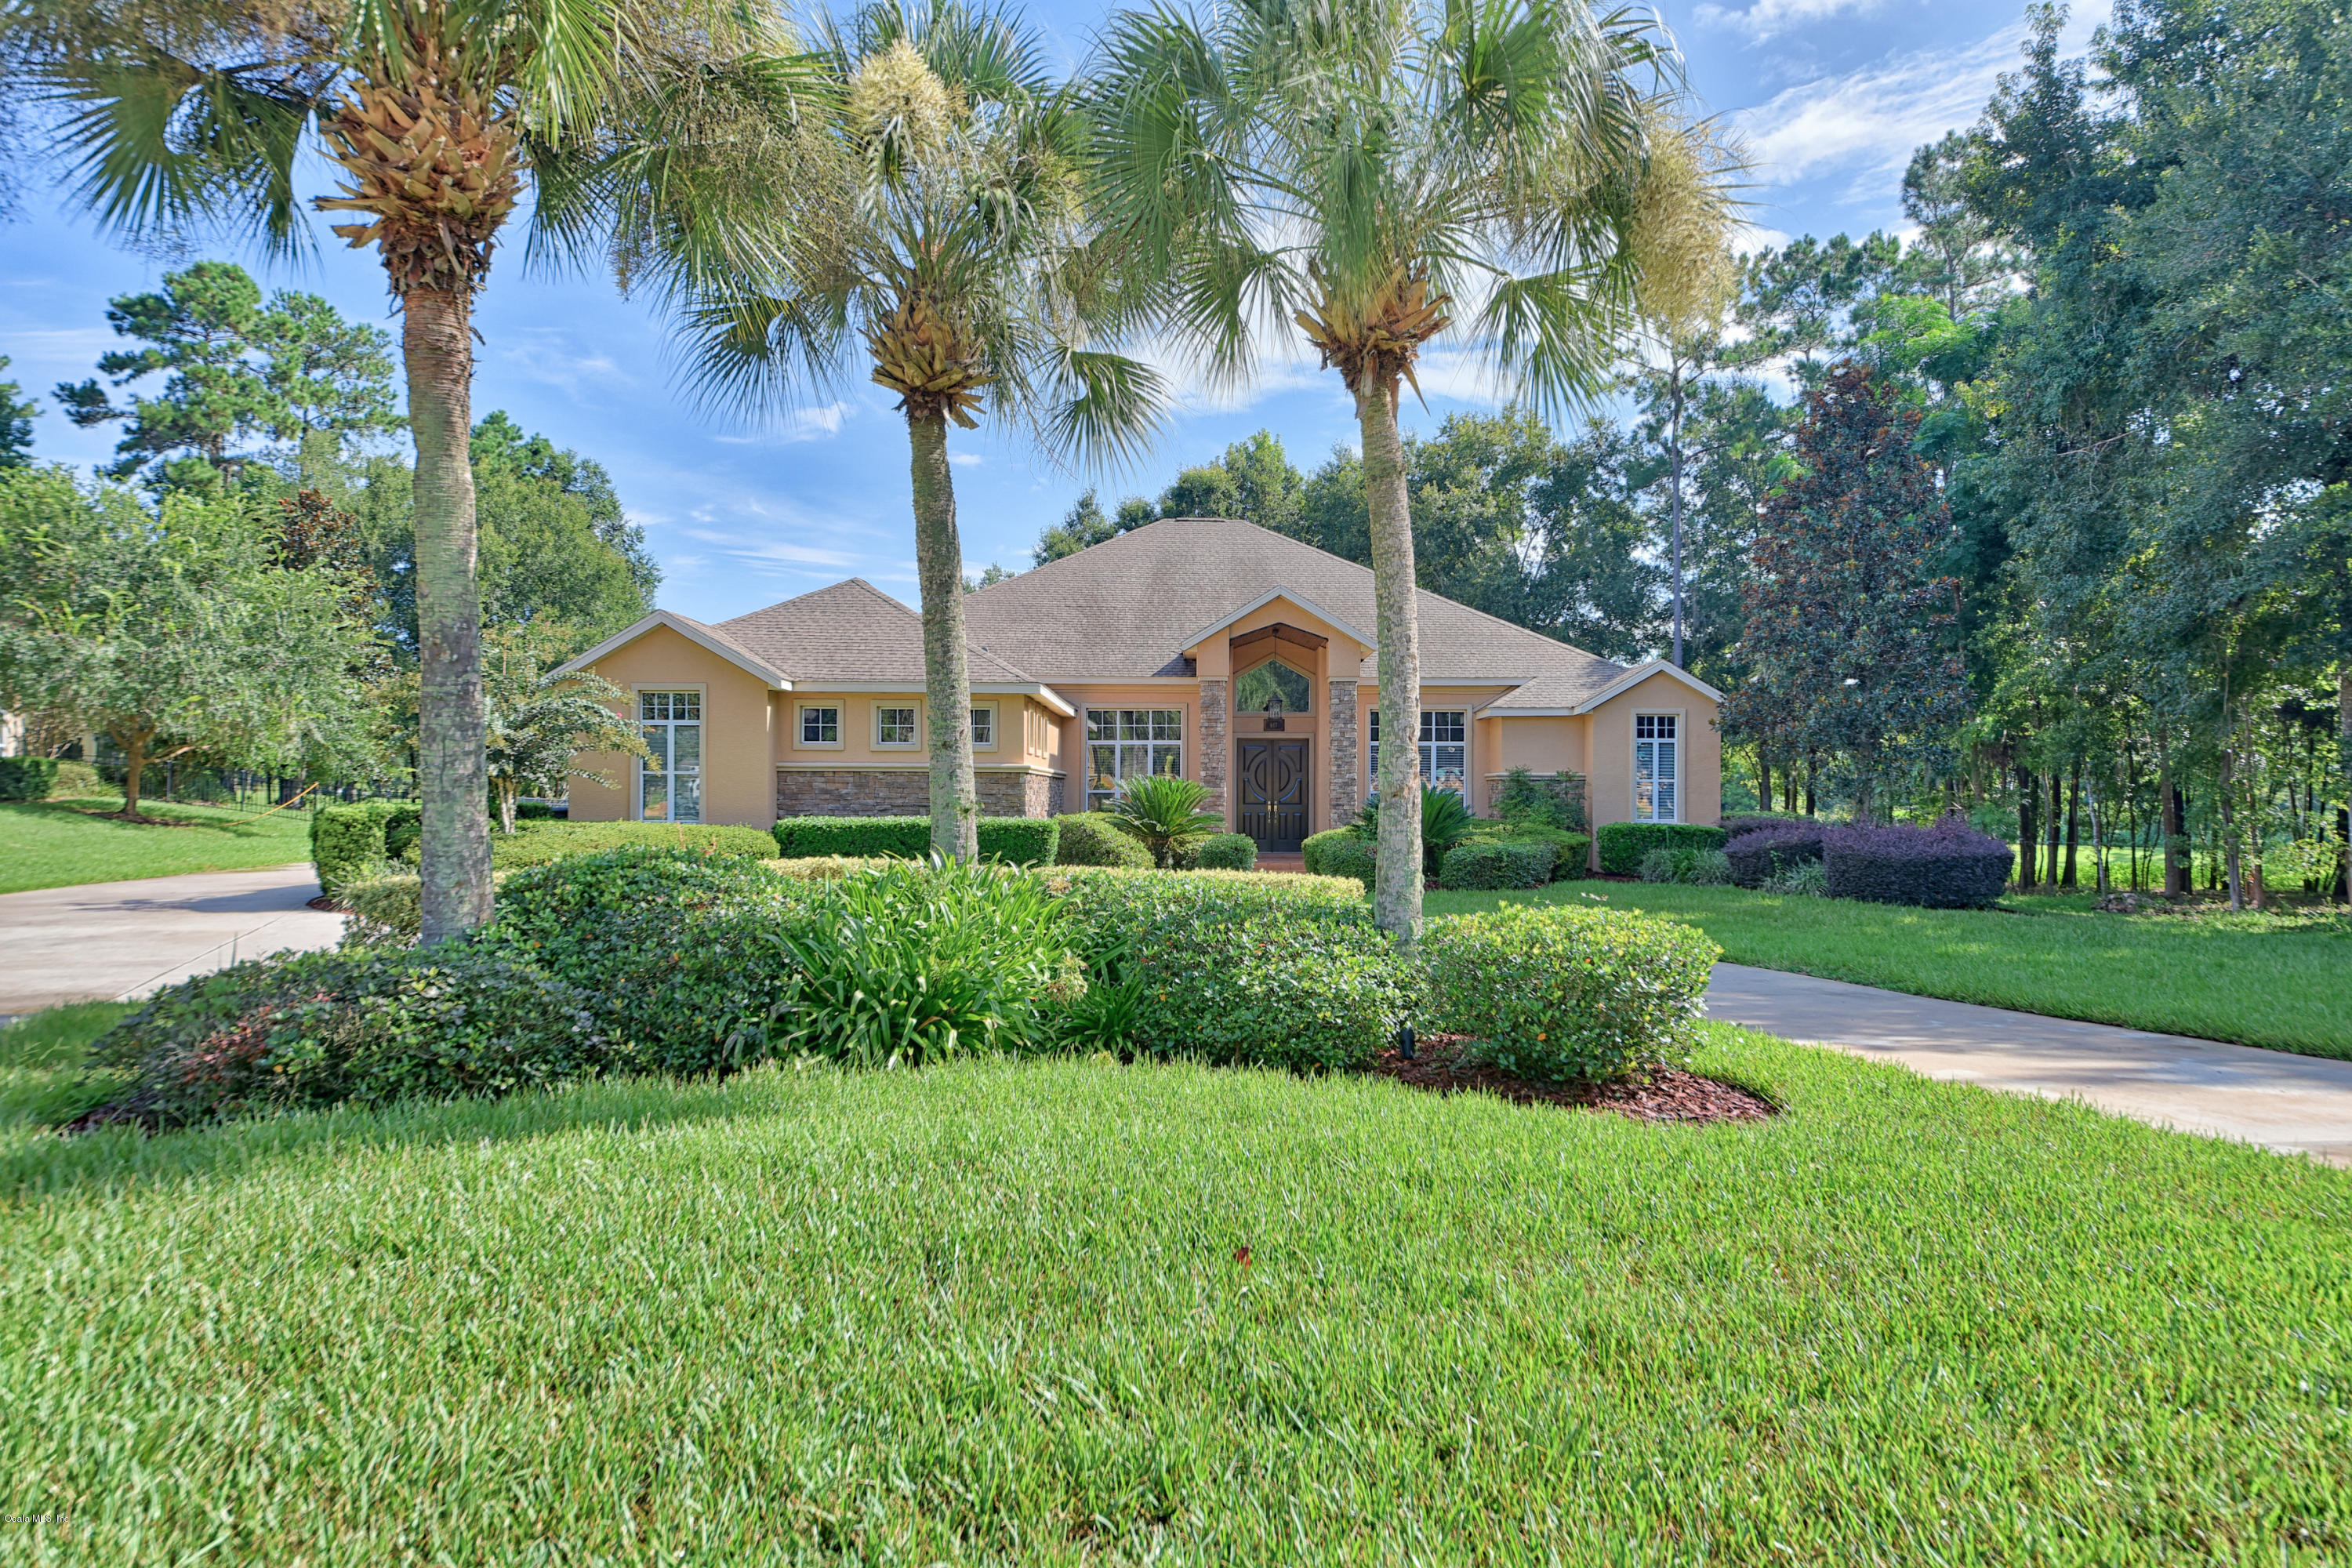 617 SE 47TH LOOP, OCALA, FL 34480